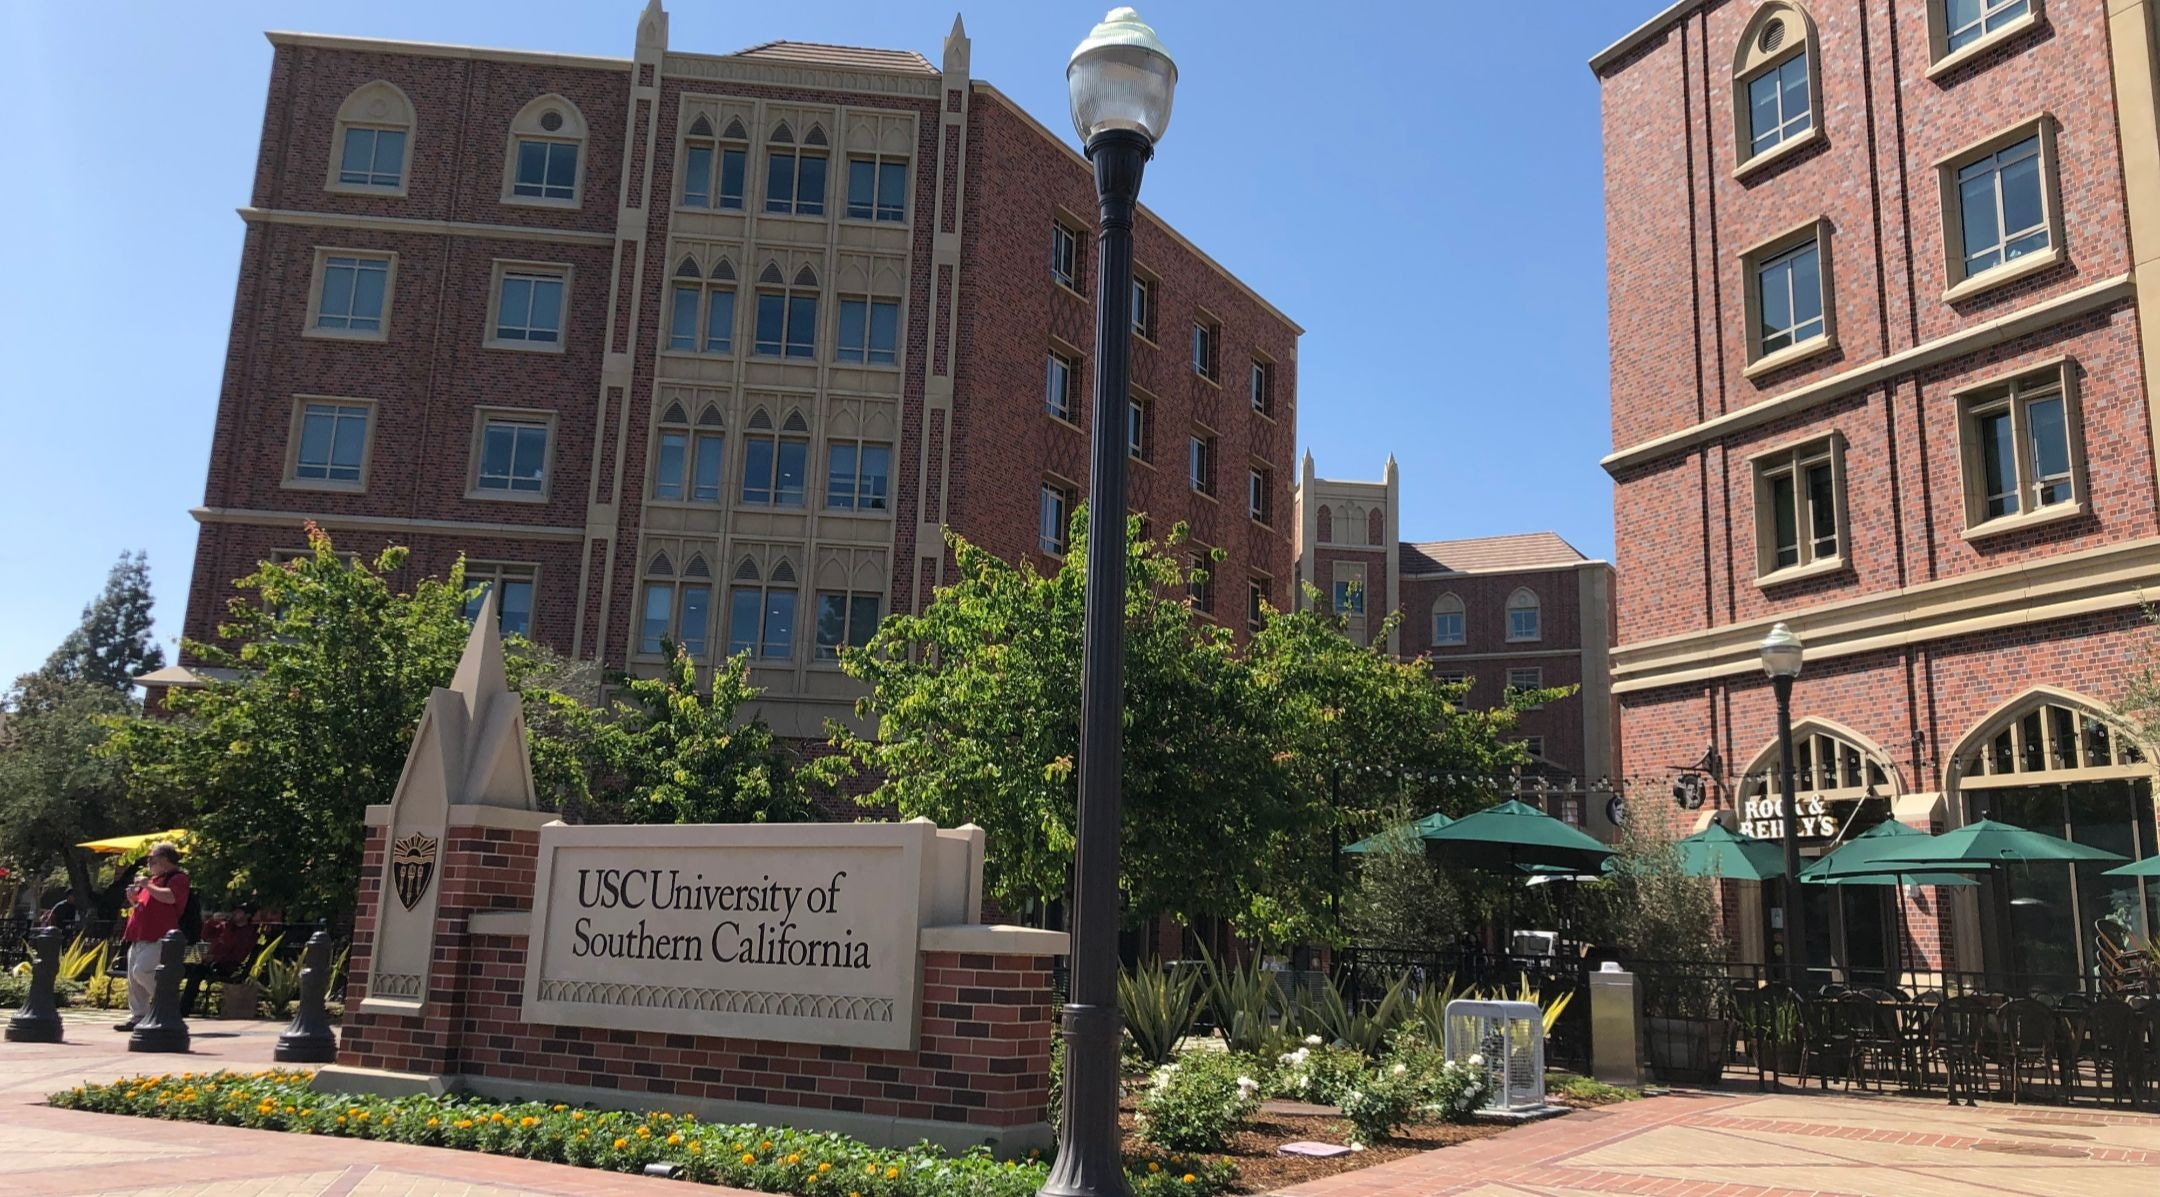 USC student government leader says she quit because she was harassed for supporting Israel